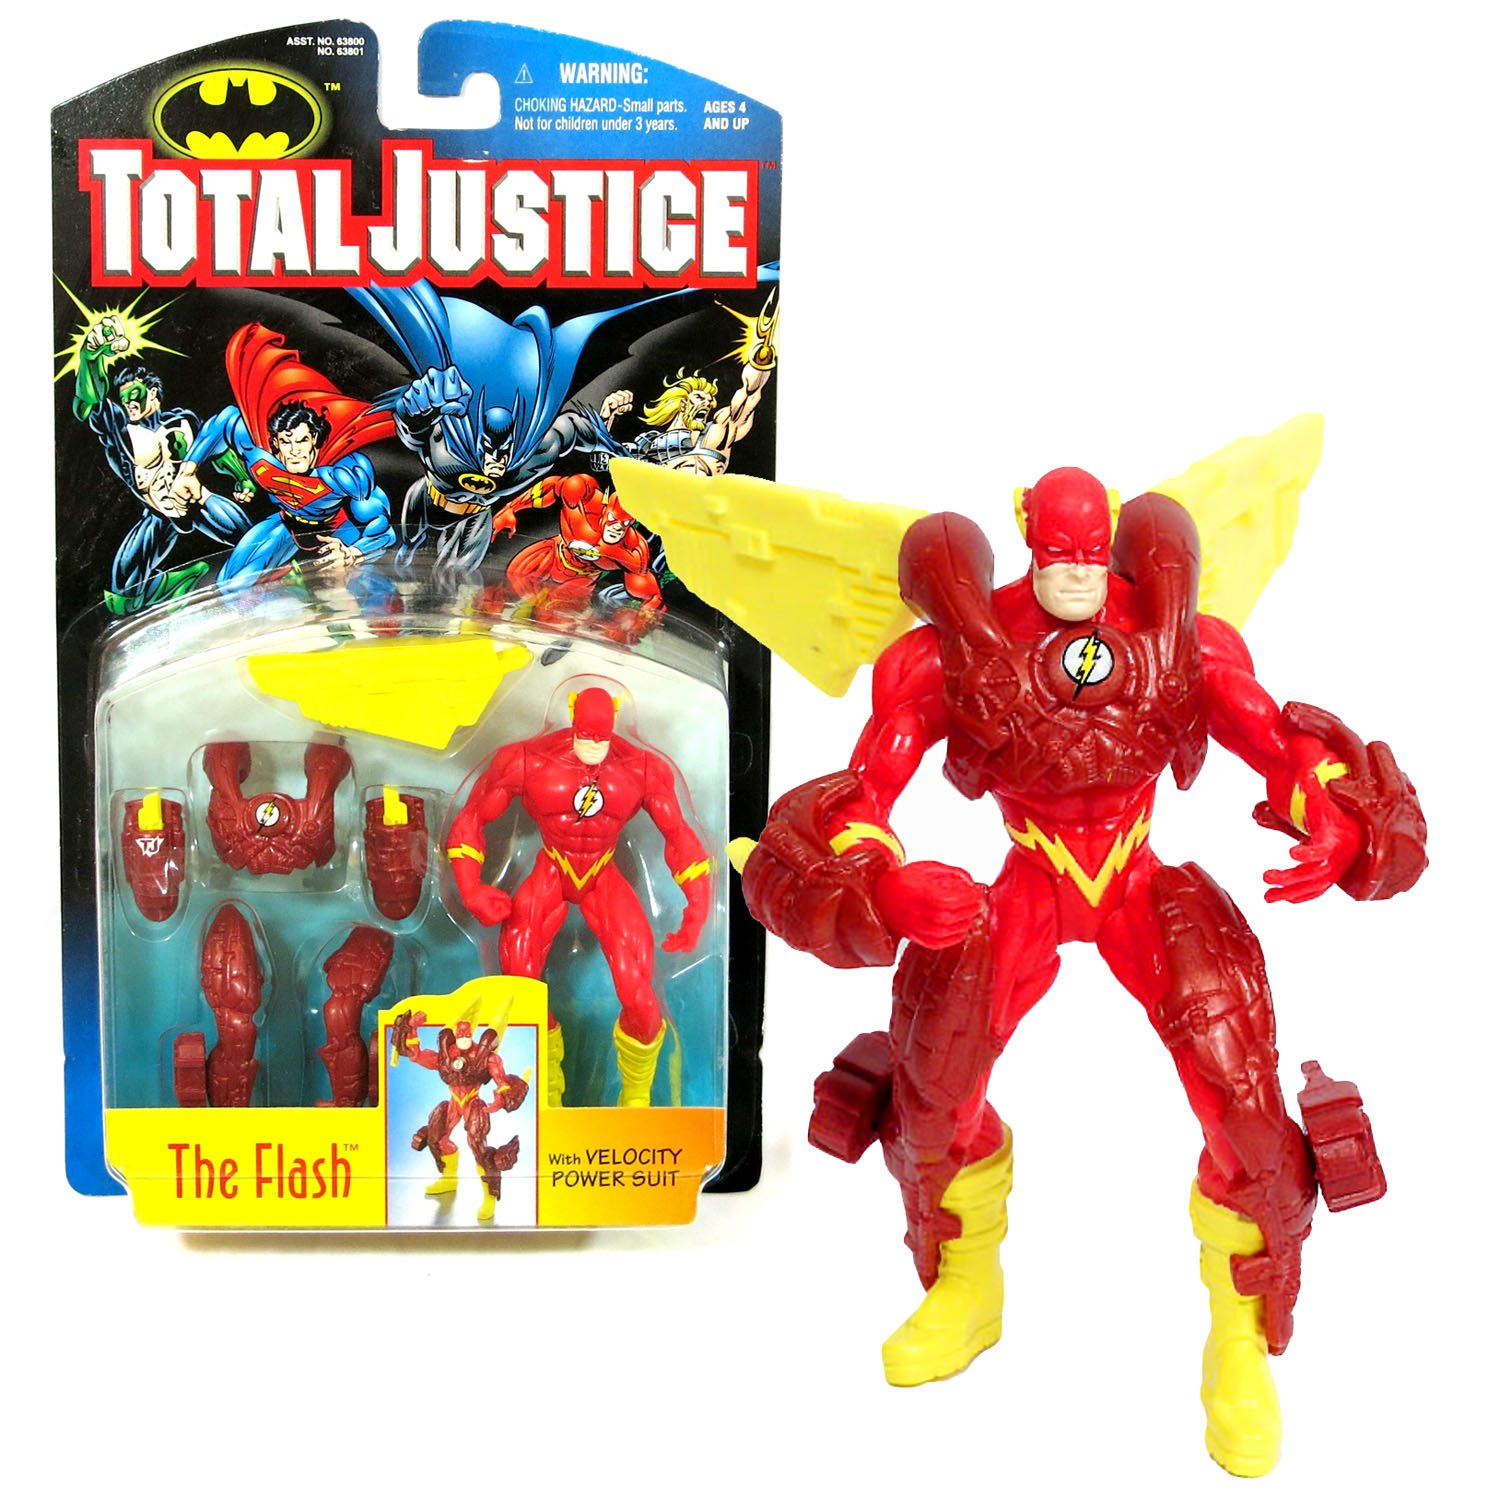 Kenner Year 1996 DC Comics Batman Total Justice Series 5 Inch Tall Action Figure - THE FLASH with Velocity Power Suit B011K9LDZ0